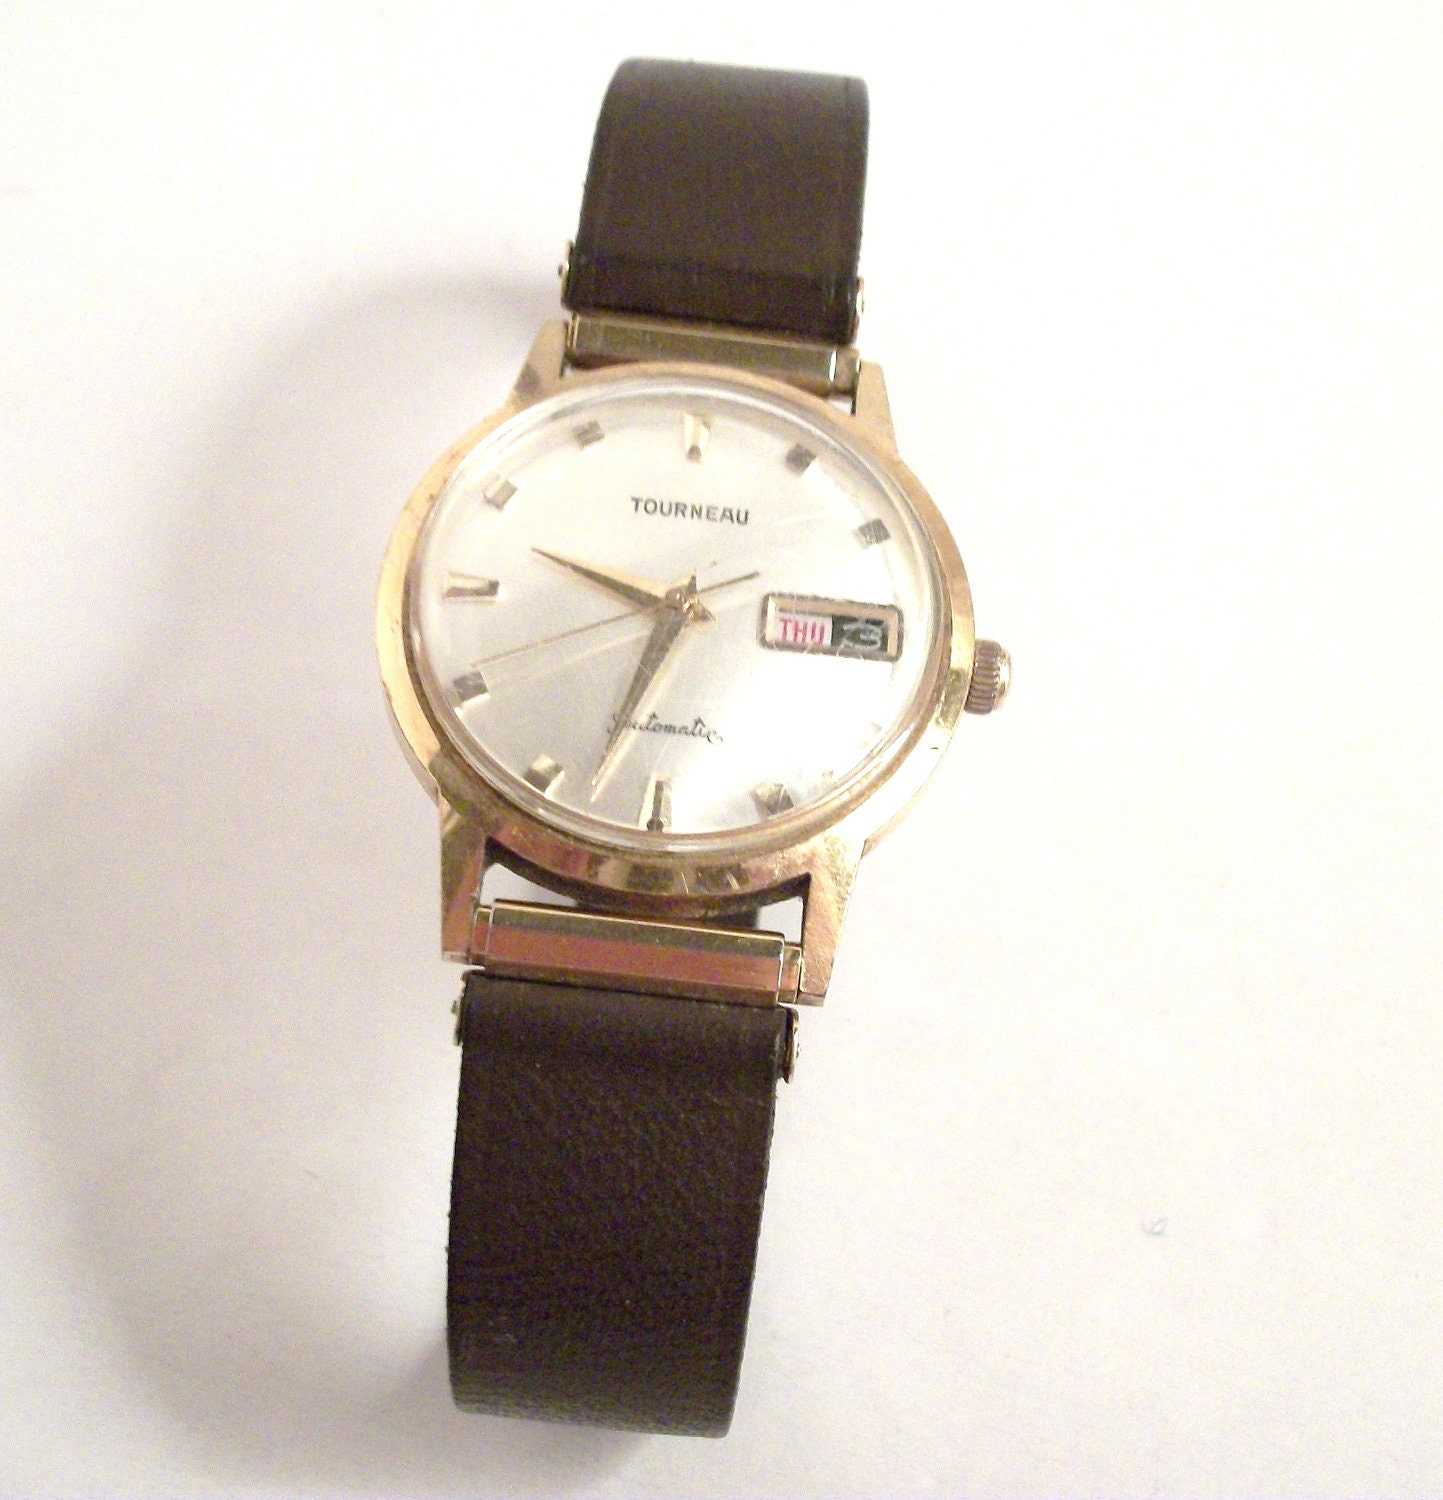 50 mens tourneau automatic sale